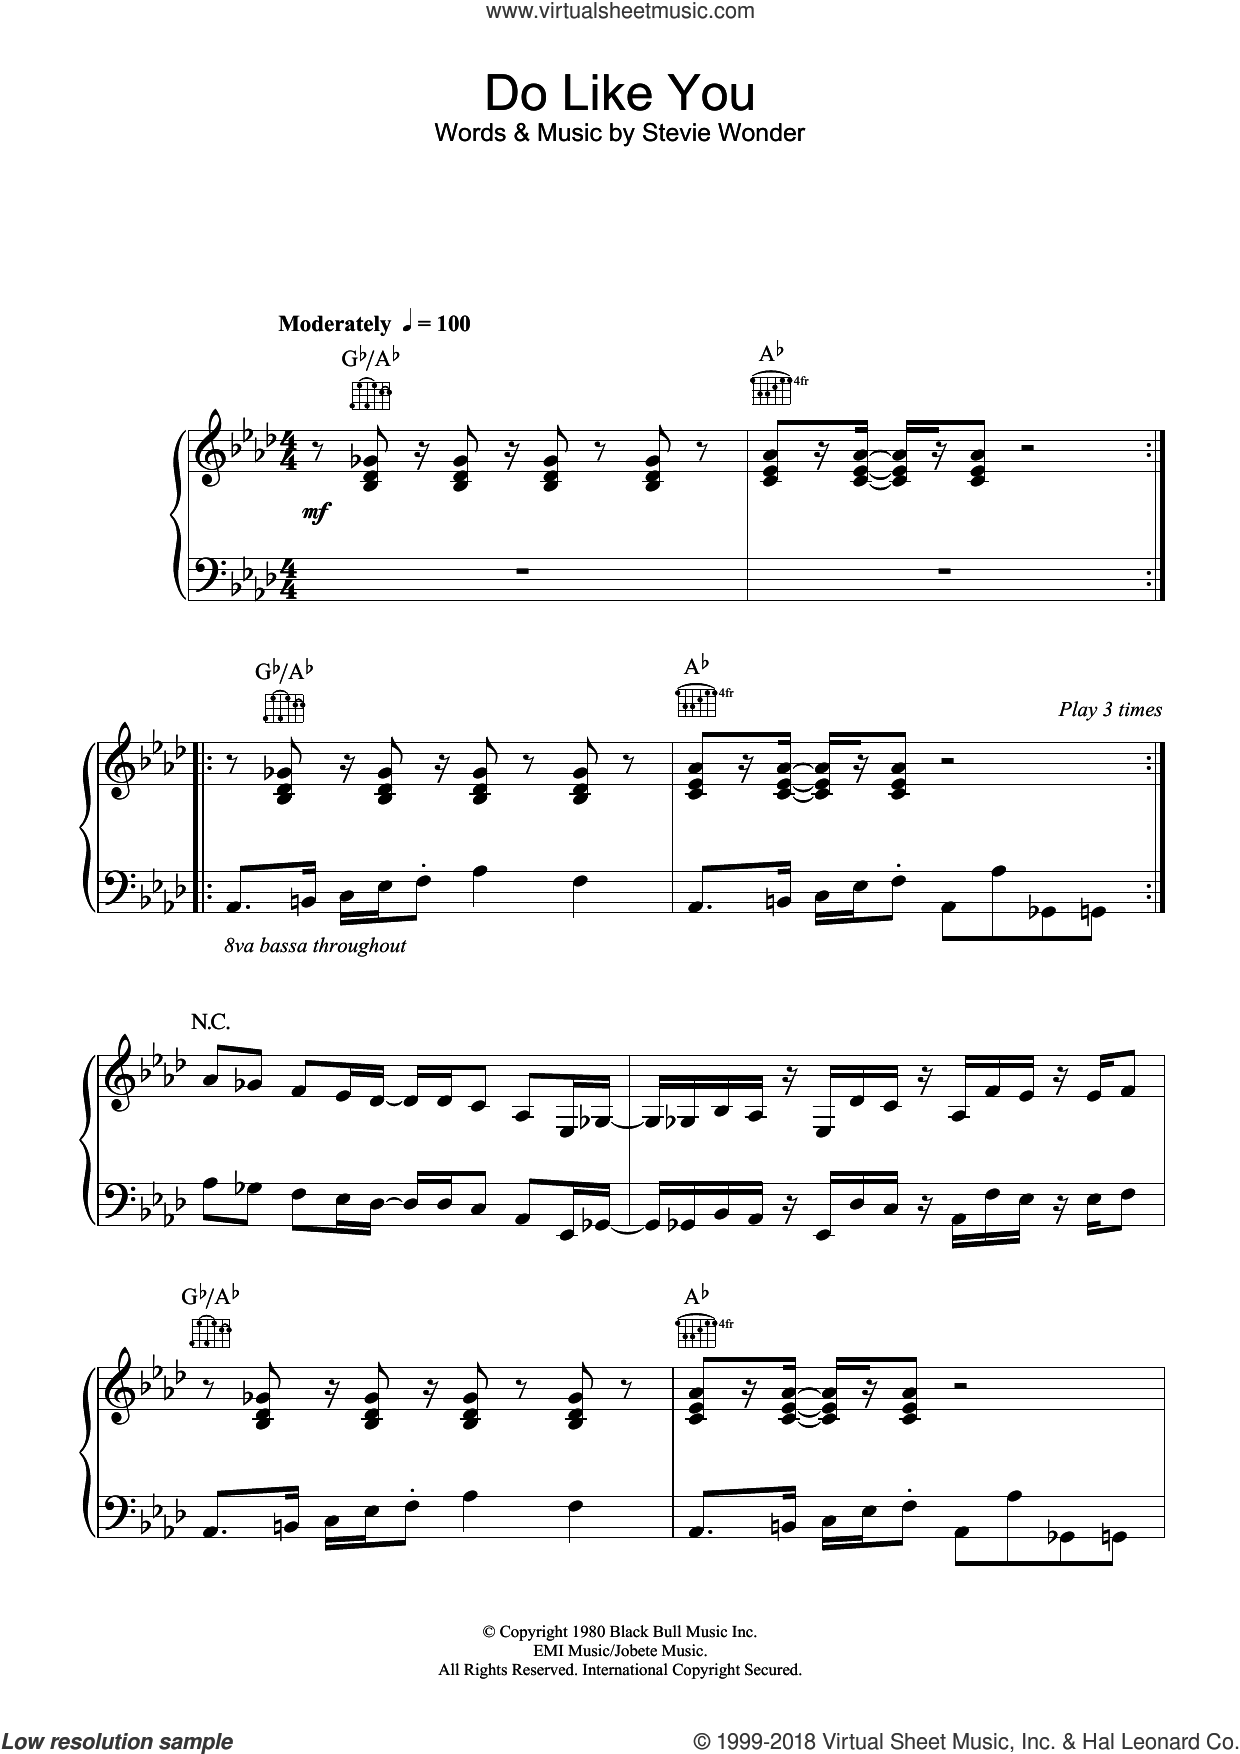 Wonder - Do Like You sheet music for voice, piano or guitar [PDF]